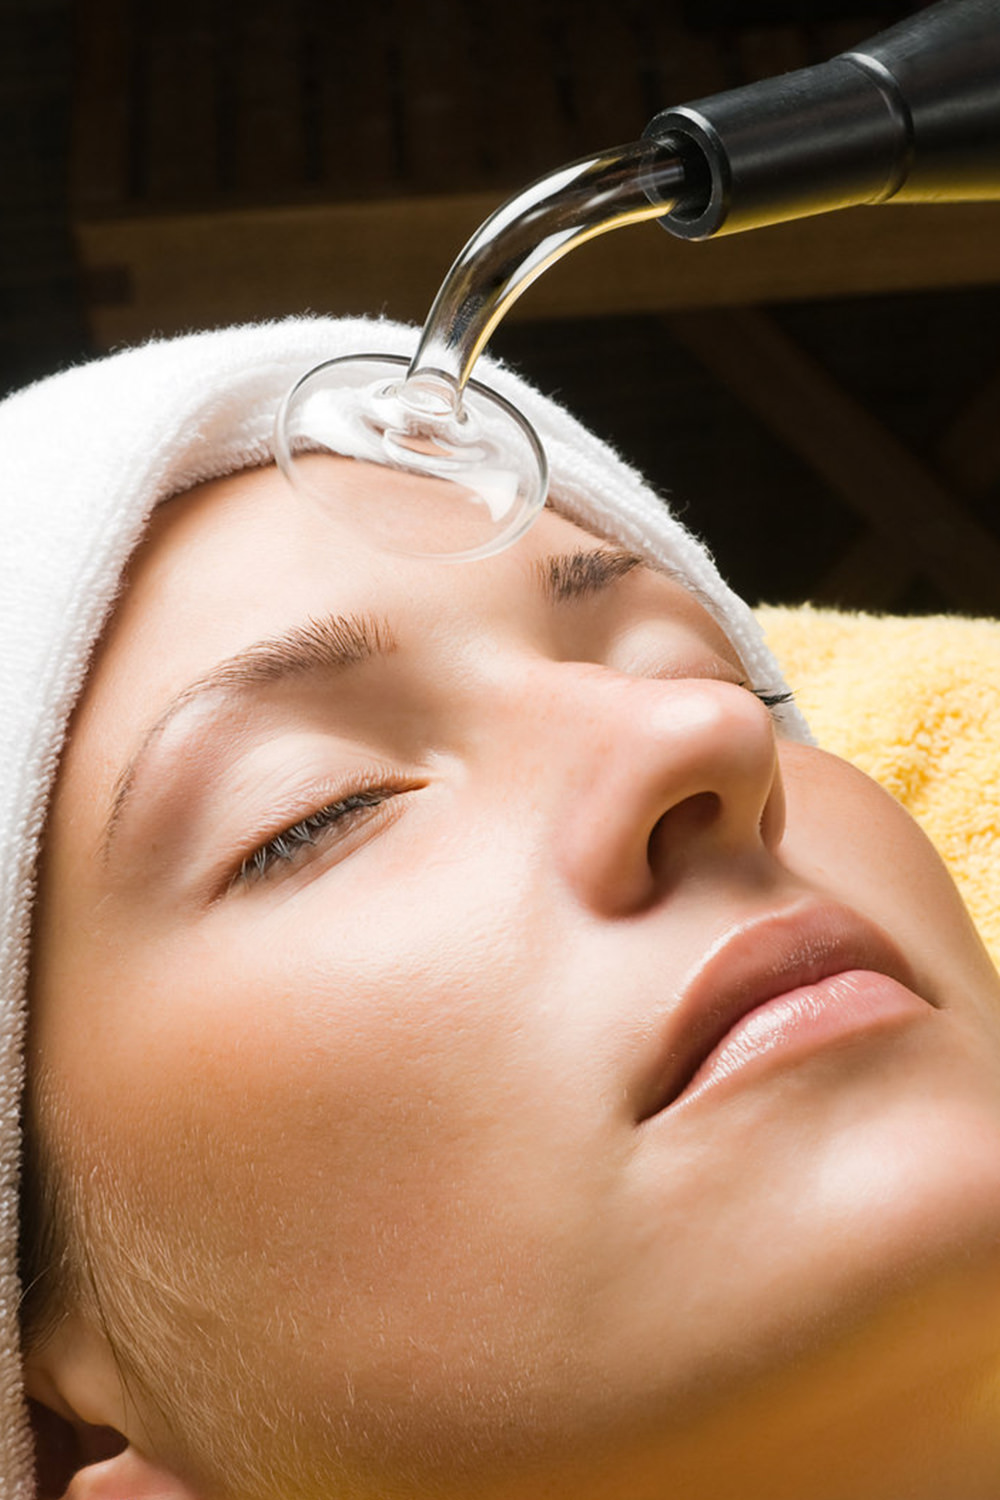 """Steam Extraction - $60Appropriate for all skin types, this """"lunchtime facial"""" provides noticeable results with minimal time commitment. The Steam & Extraction includes a cleansing, steam & extraction, and a customized mask."""